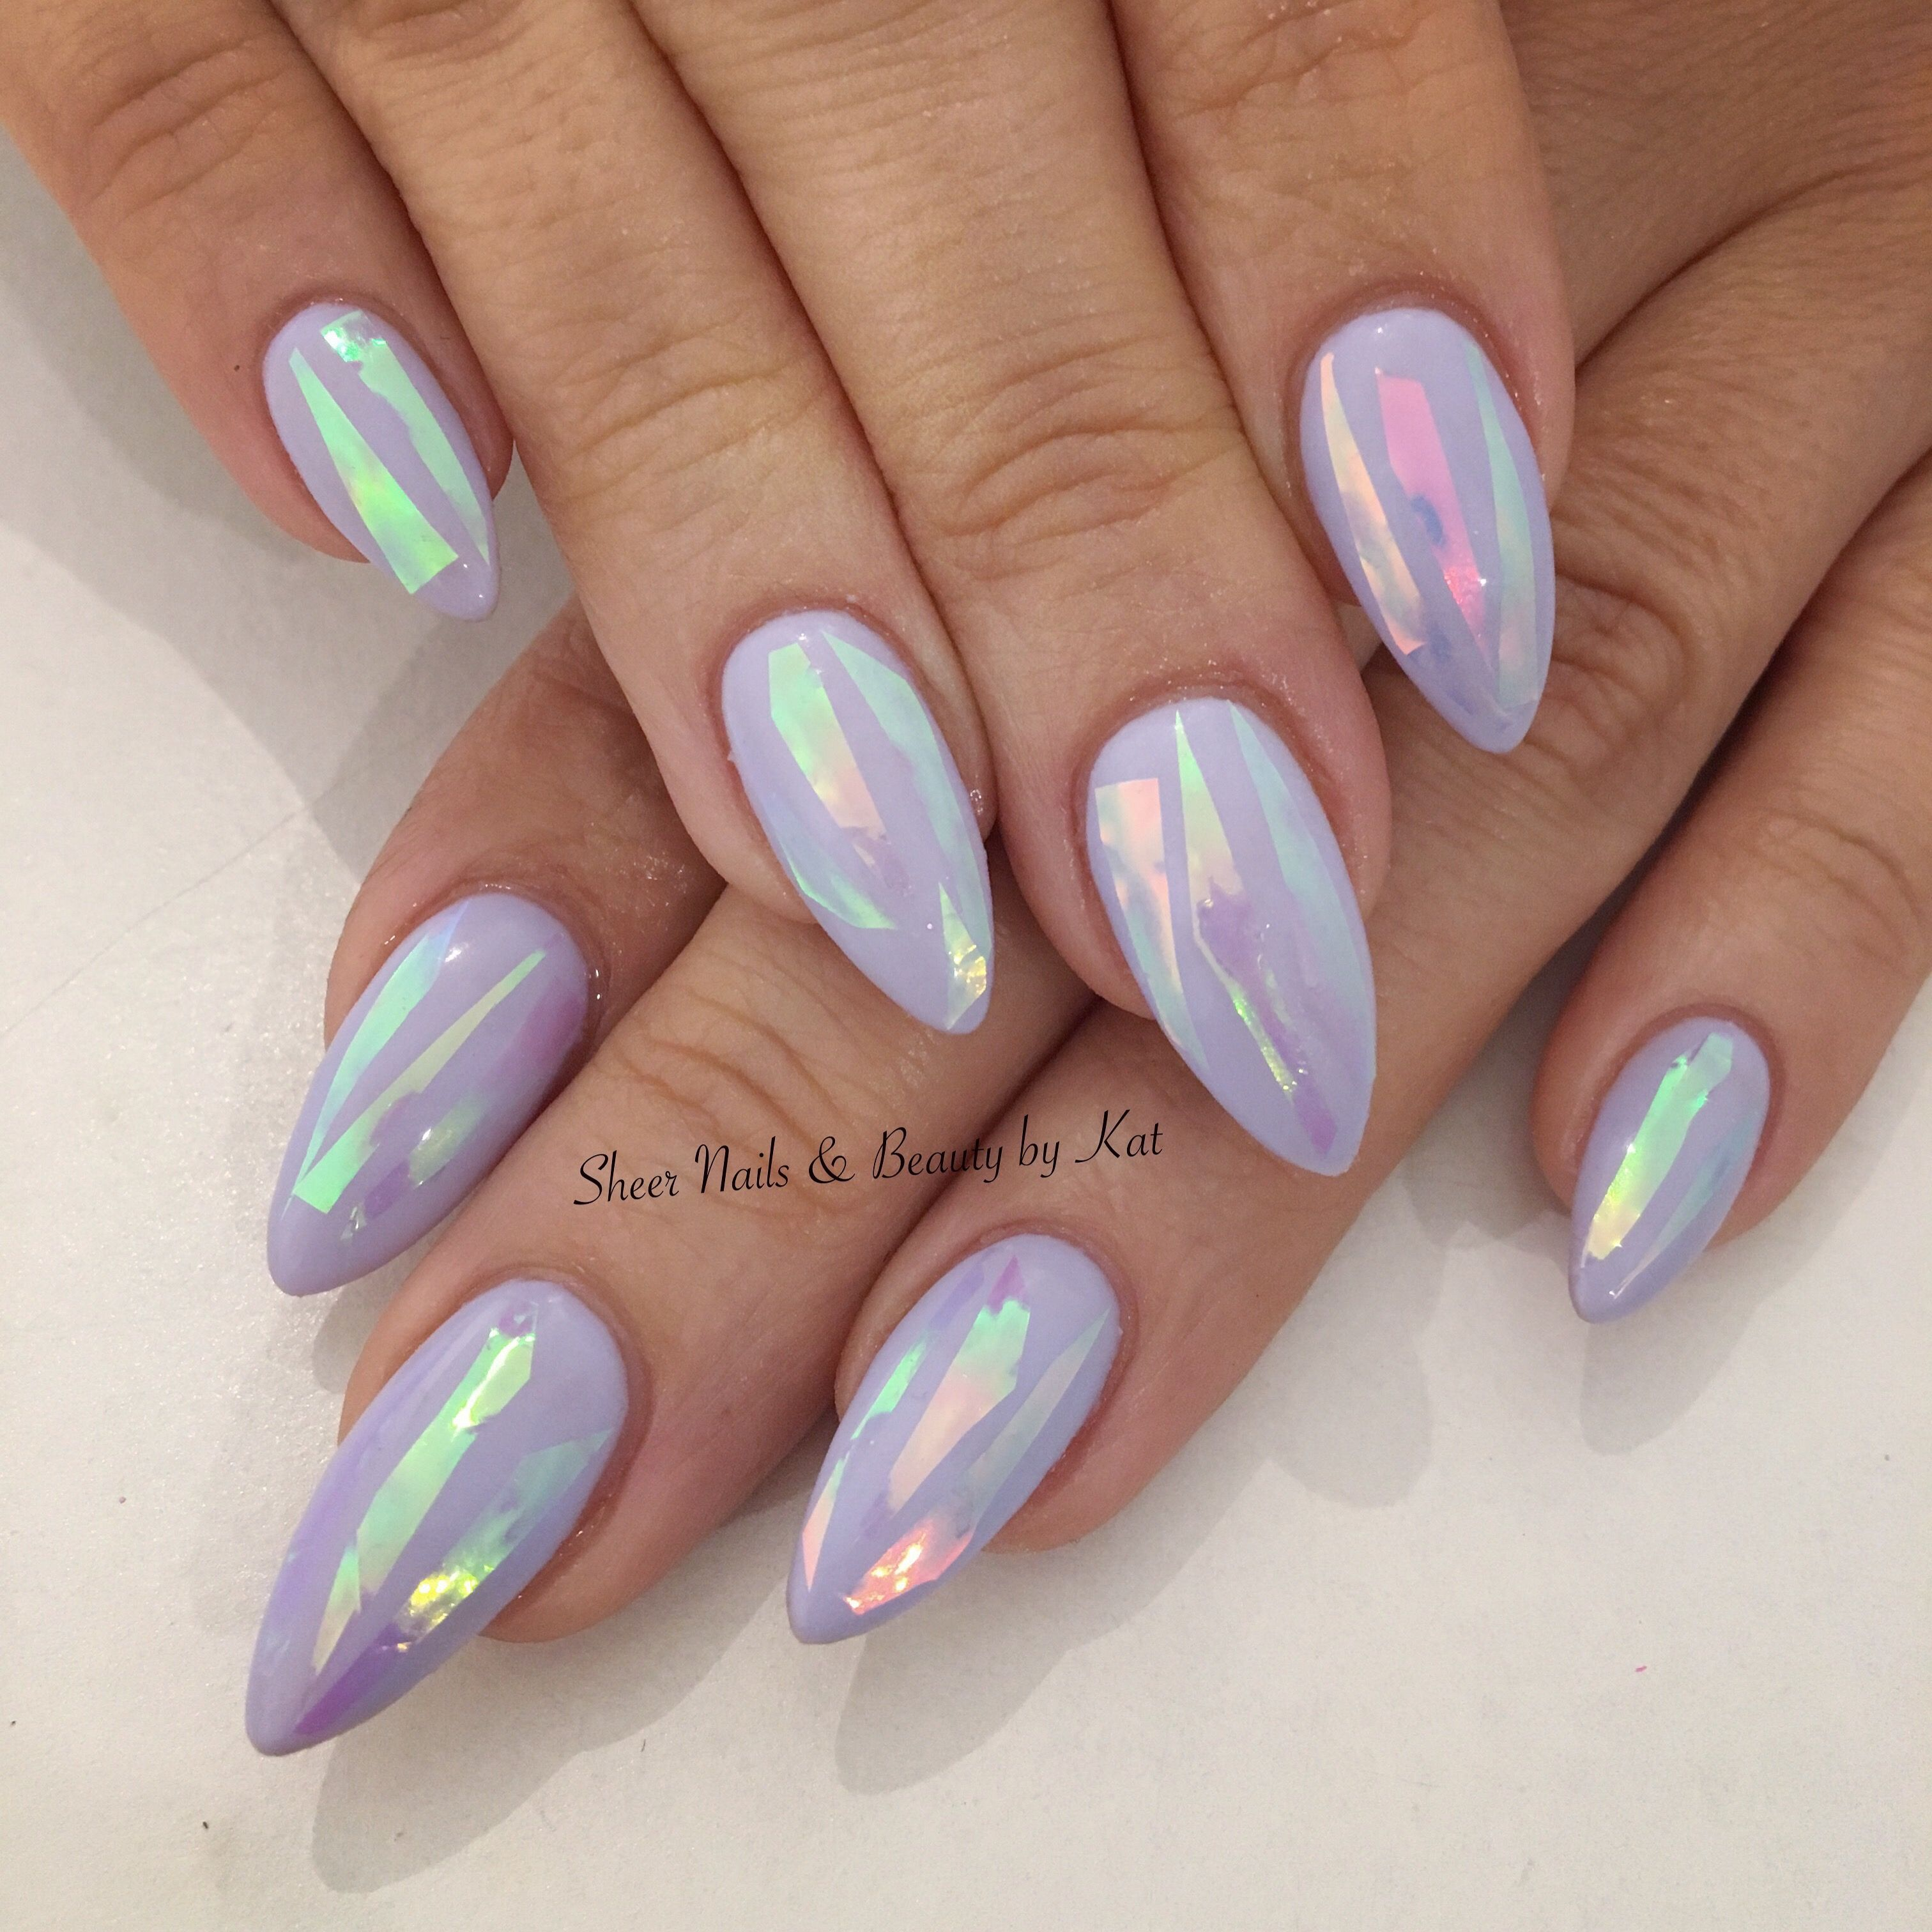 Nails inc gel nail colors and gel nail polish on pinterest - Prohesion Sculpted Acrylics With The Gel Bottle Inc Colour 135 And Angel Paper Paperangelsbottlefancyhairstylesnail